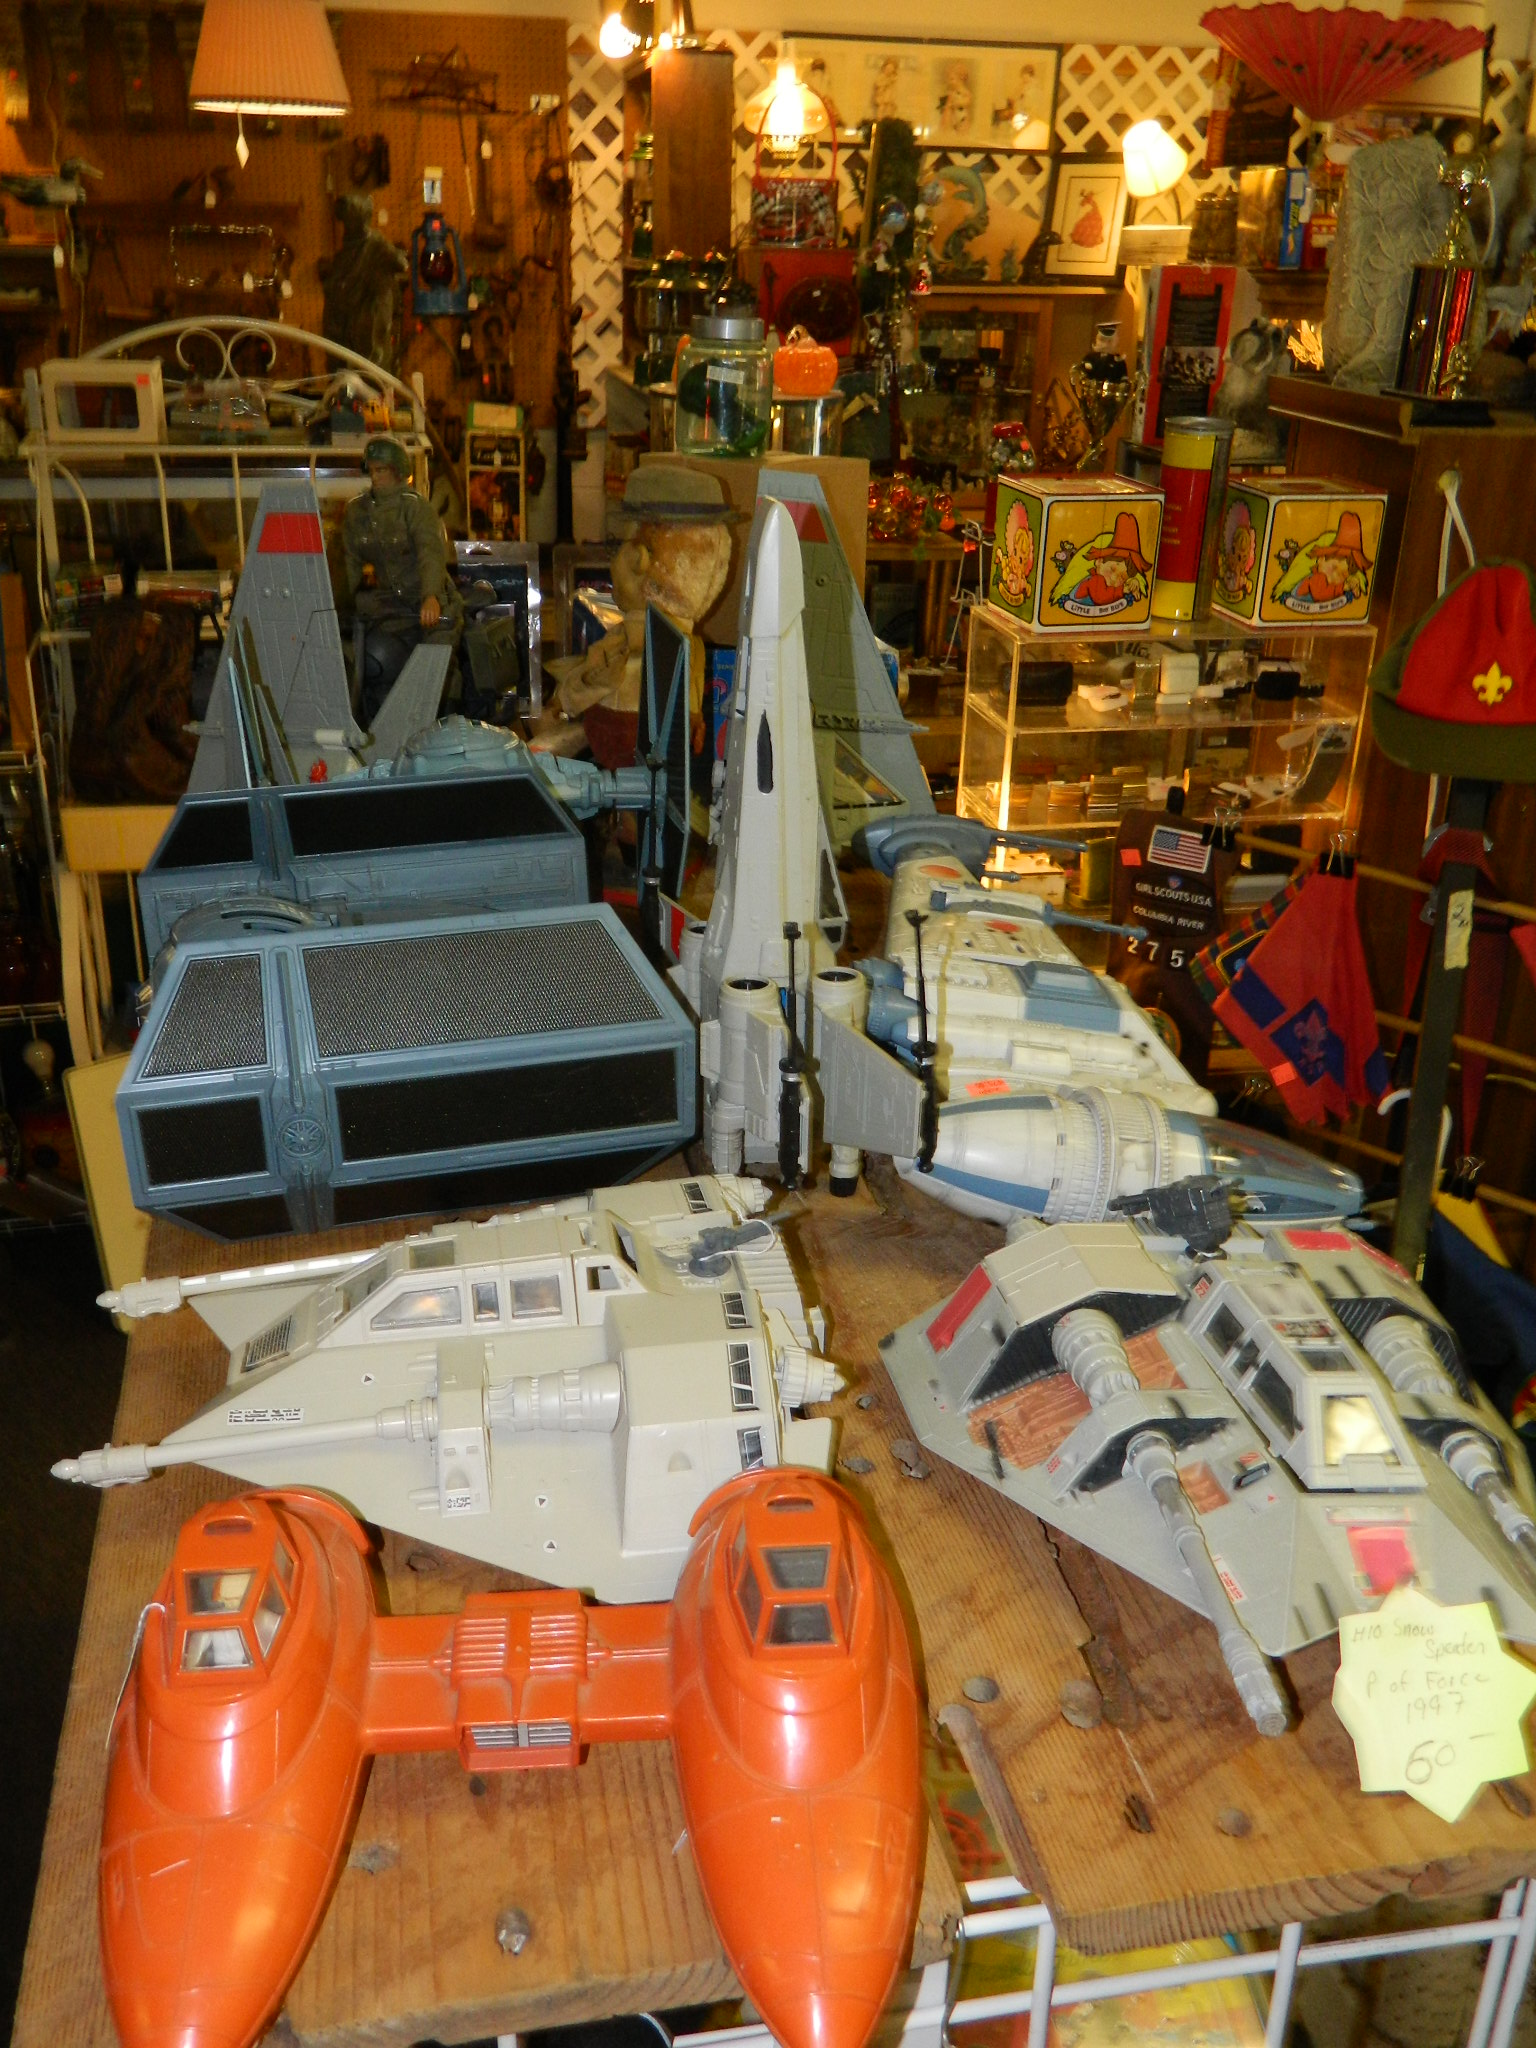 STAR WARS STUFF